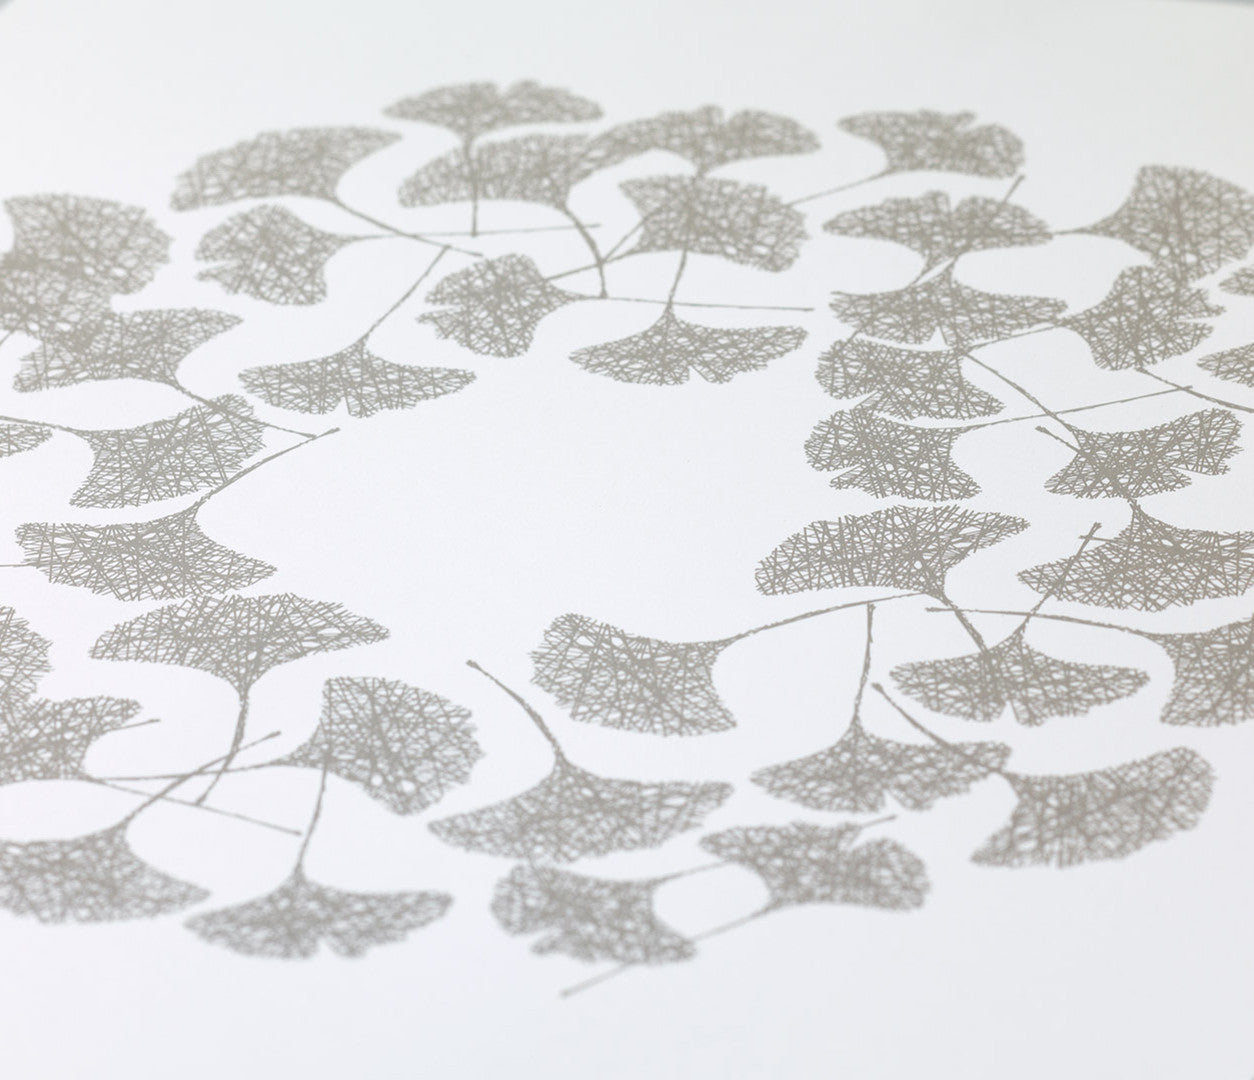 'Ginkgo' Art Print in Warm Stone